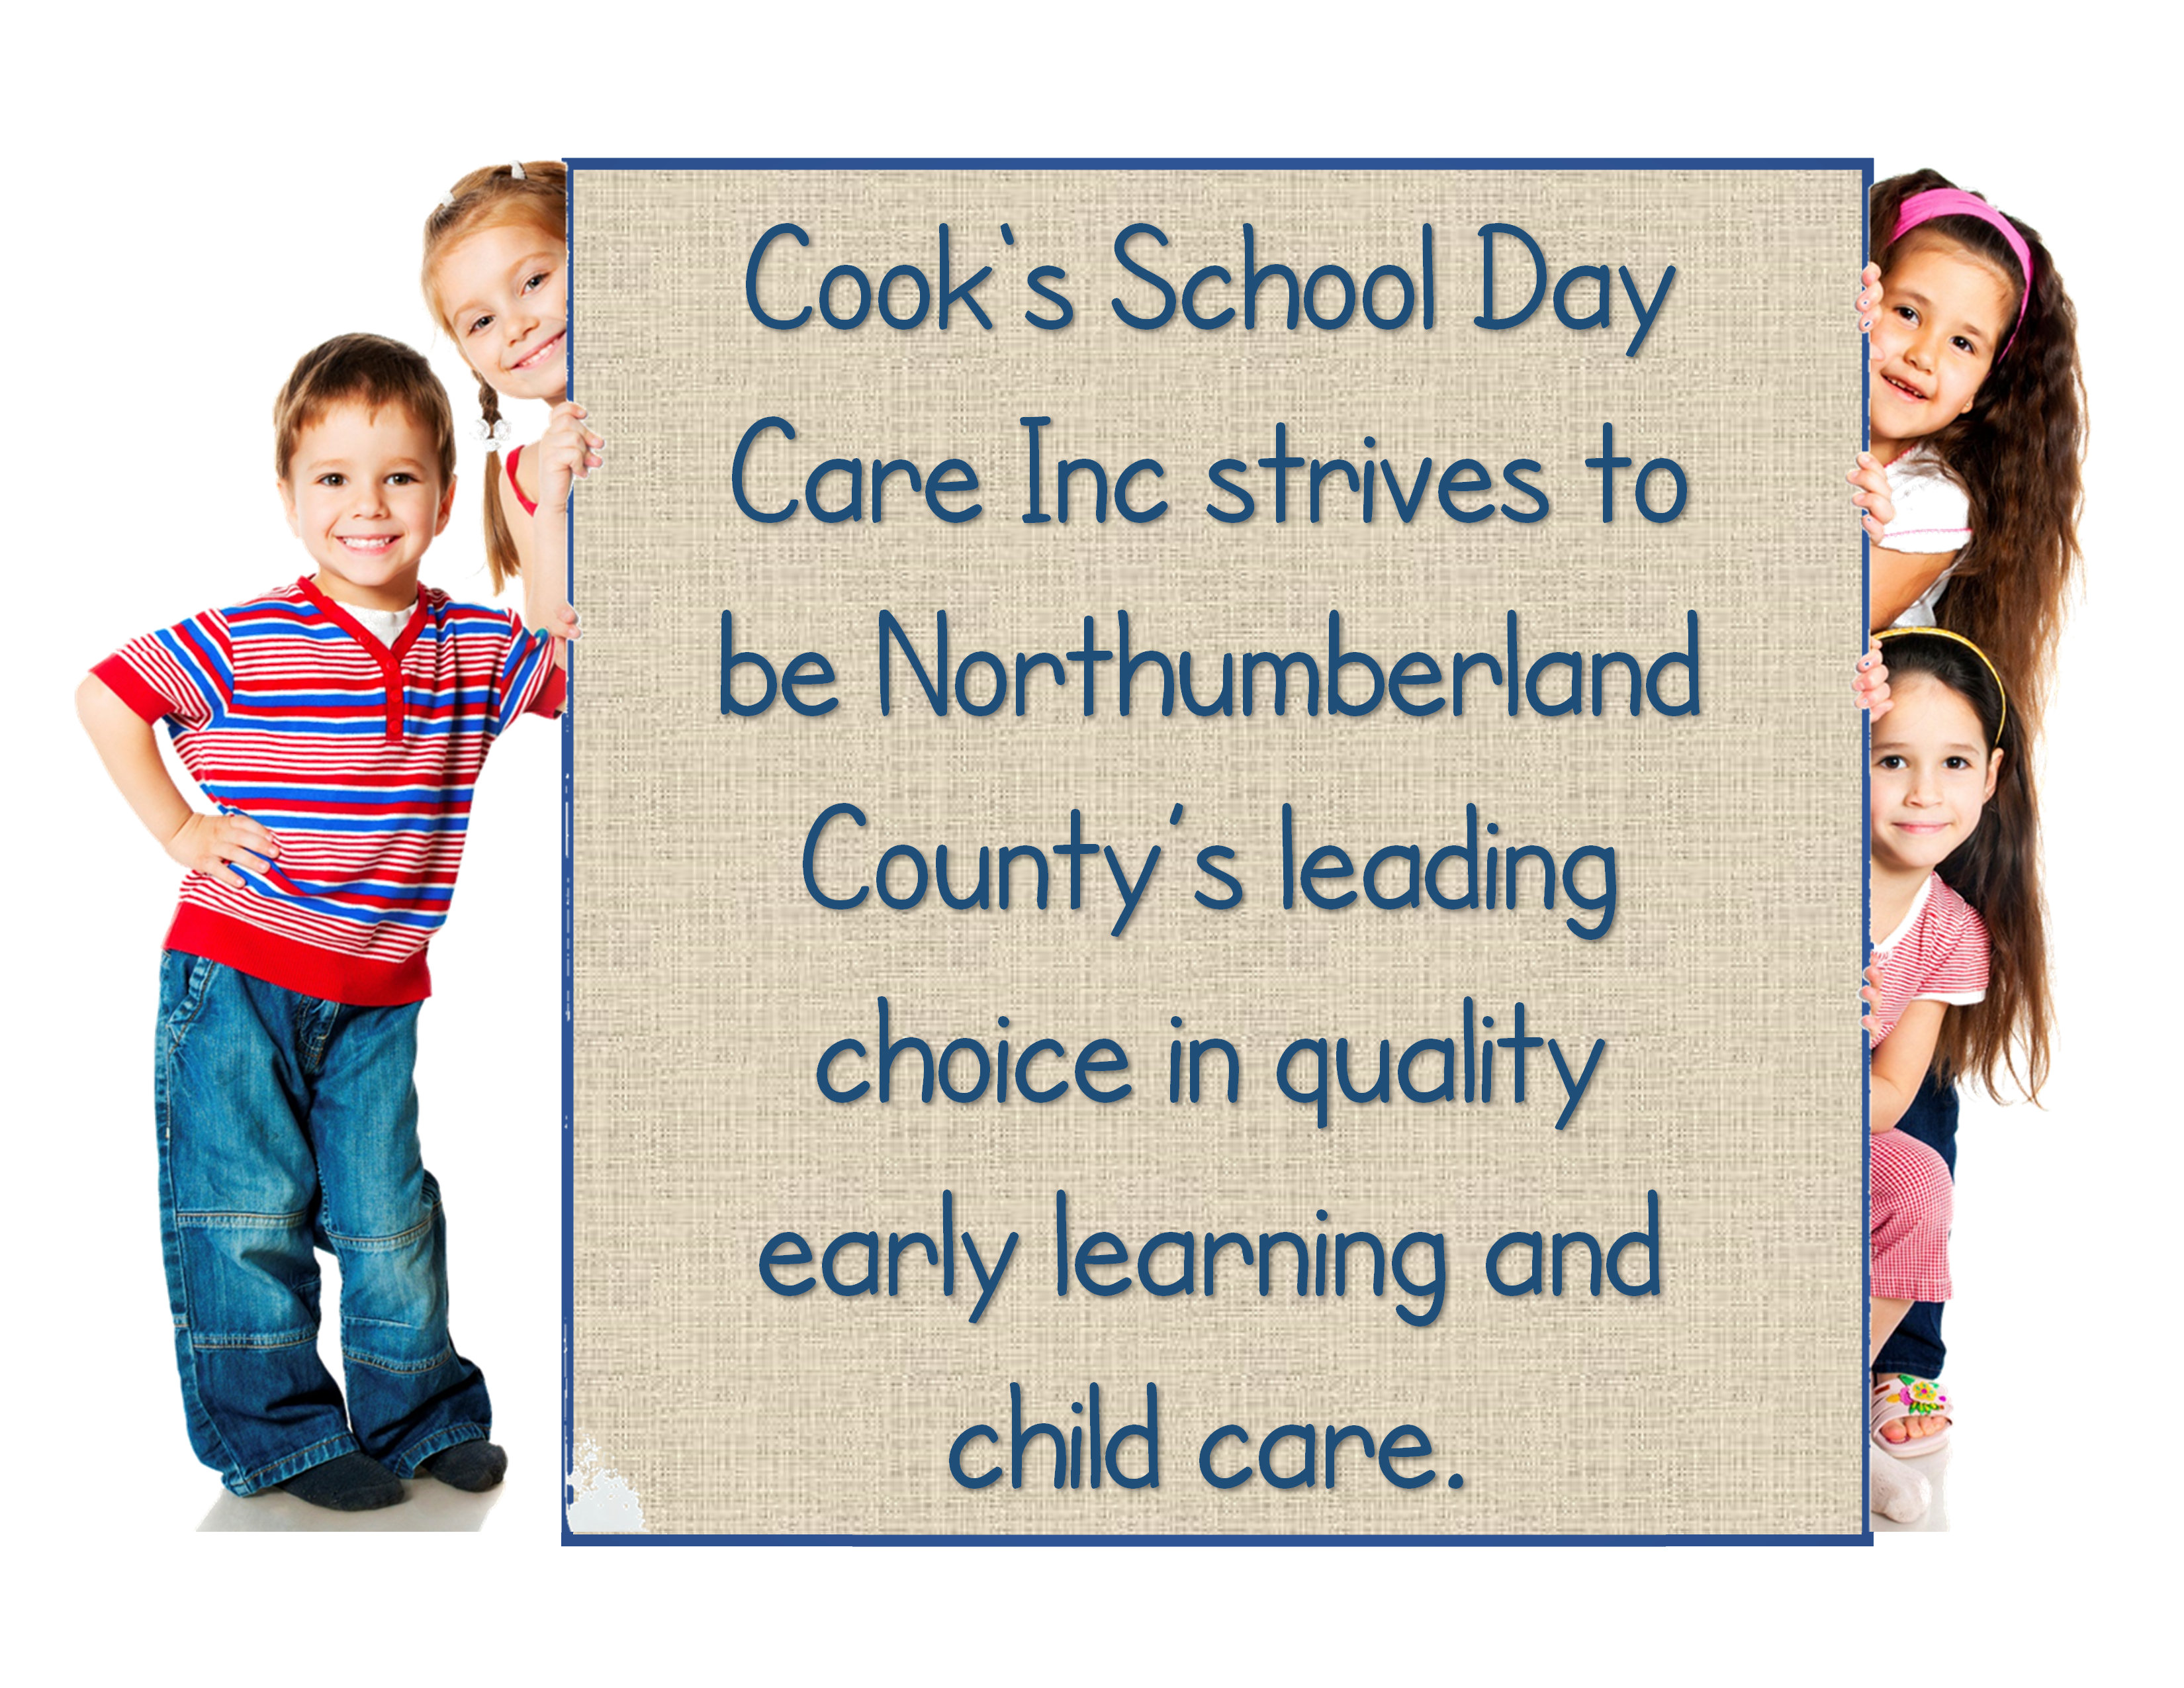 Cook's Home Child Care Agency (Cook's School Day Care Inc.) image 3